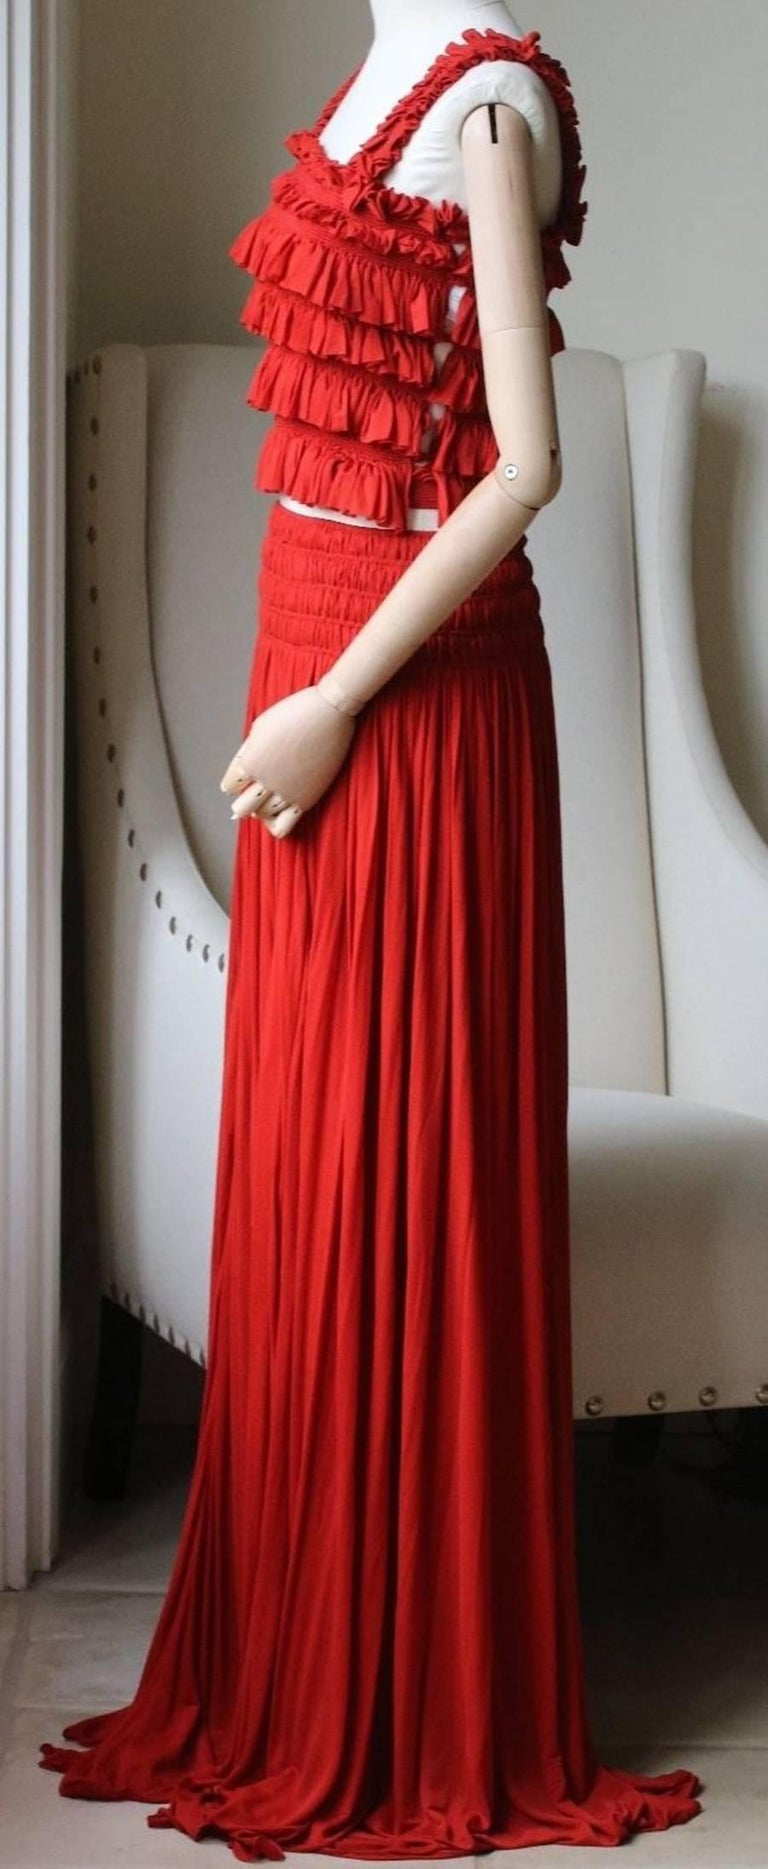 Red Azzedine Alaia Shirred Ruched Crop Top and Skirt For Sale